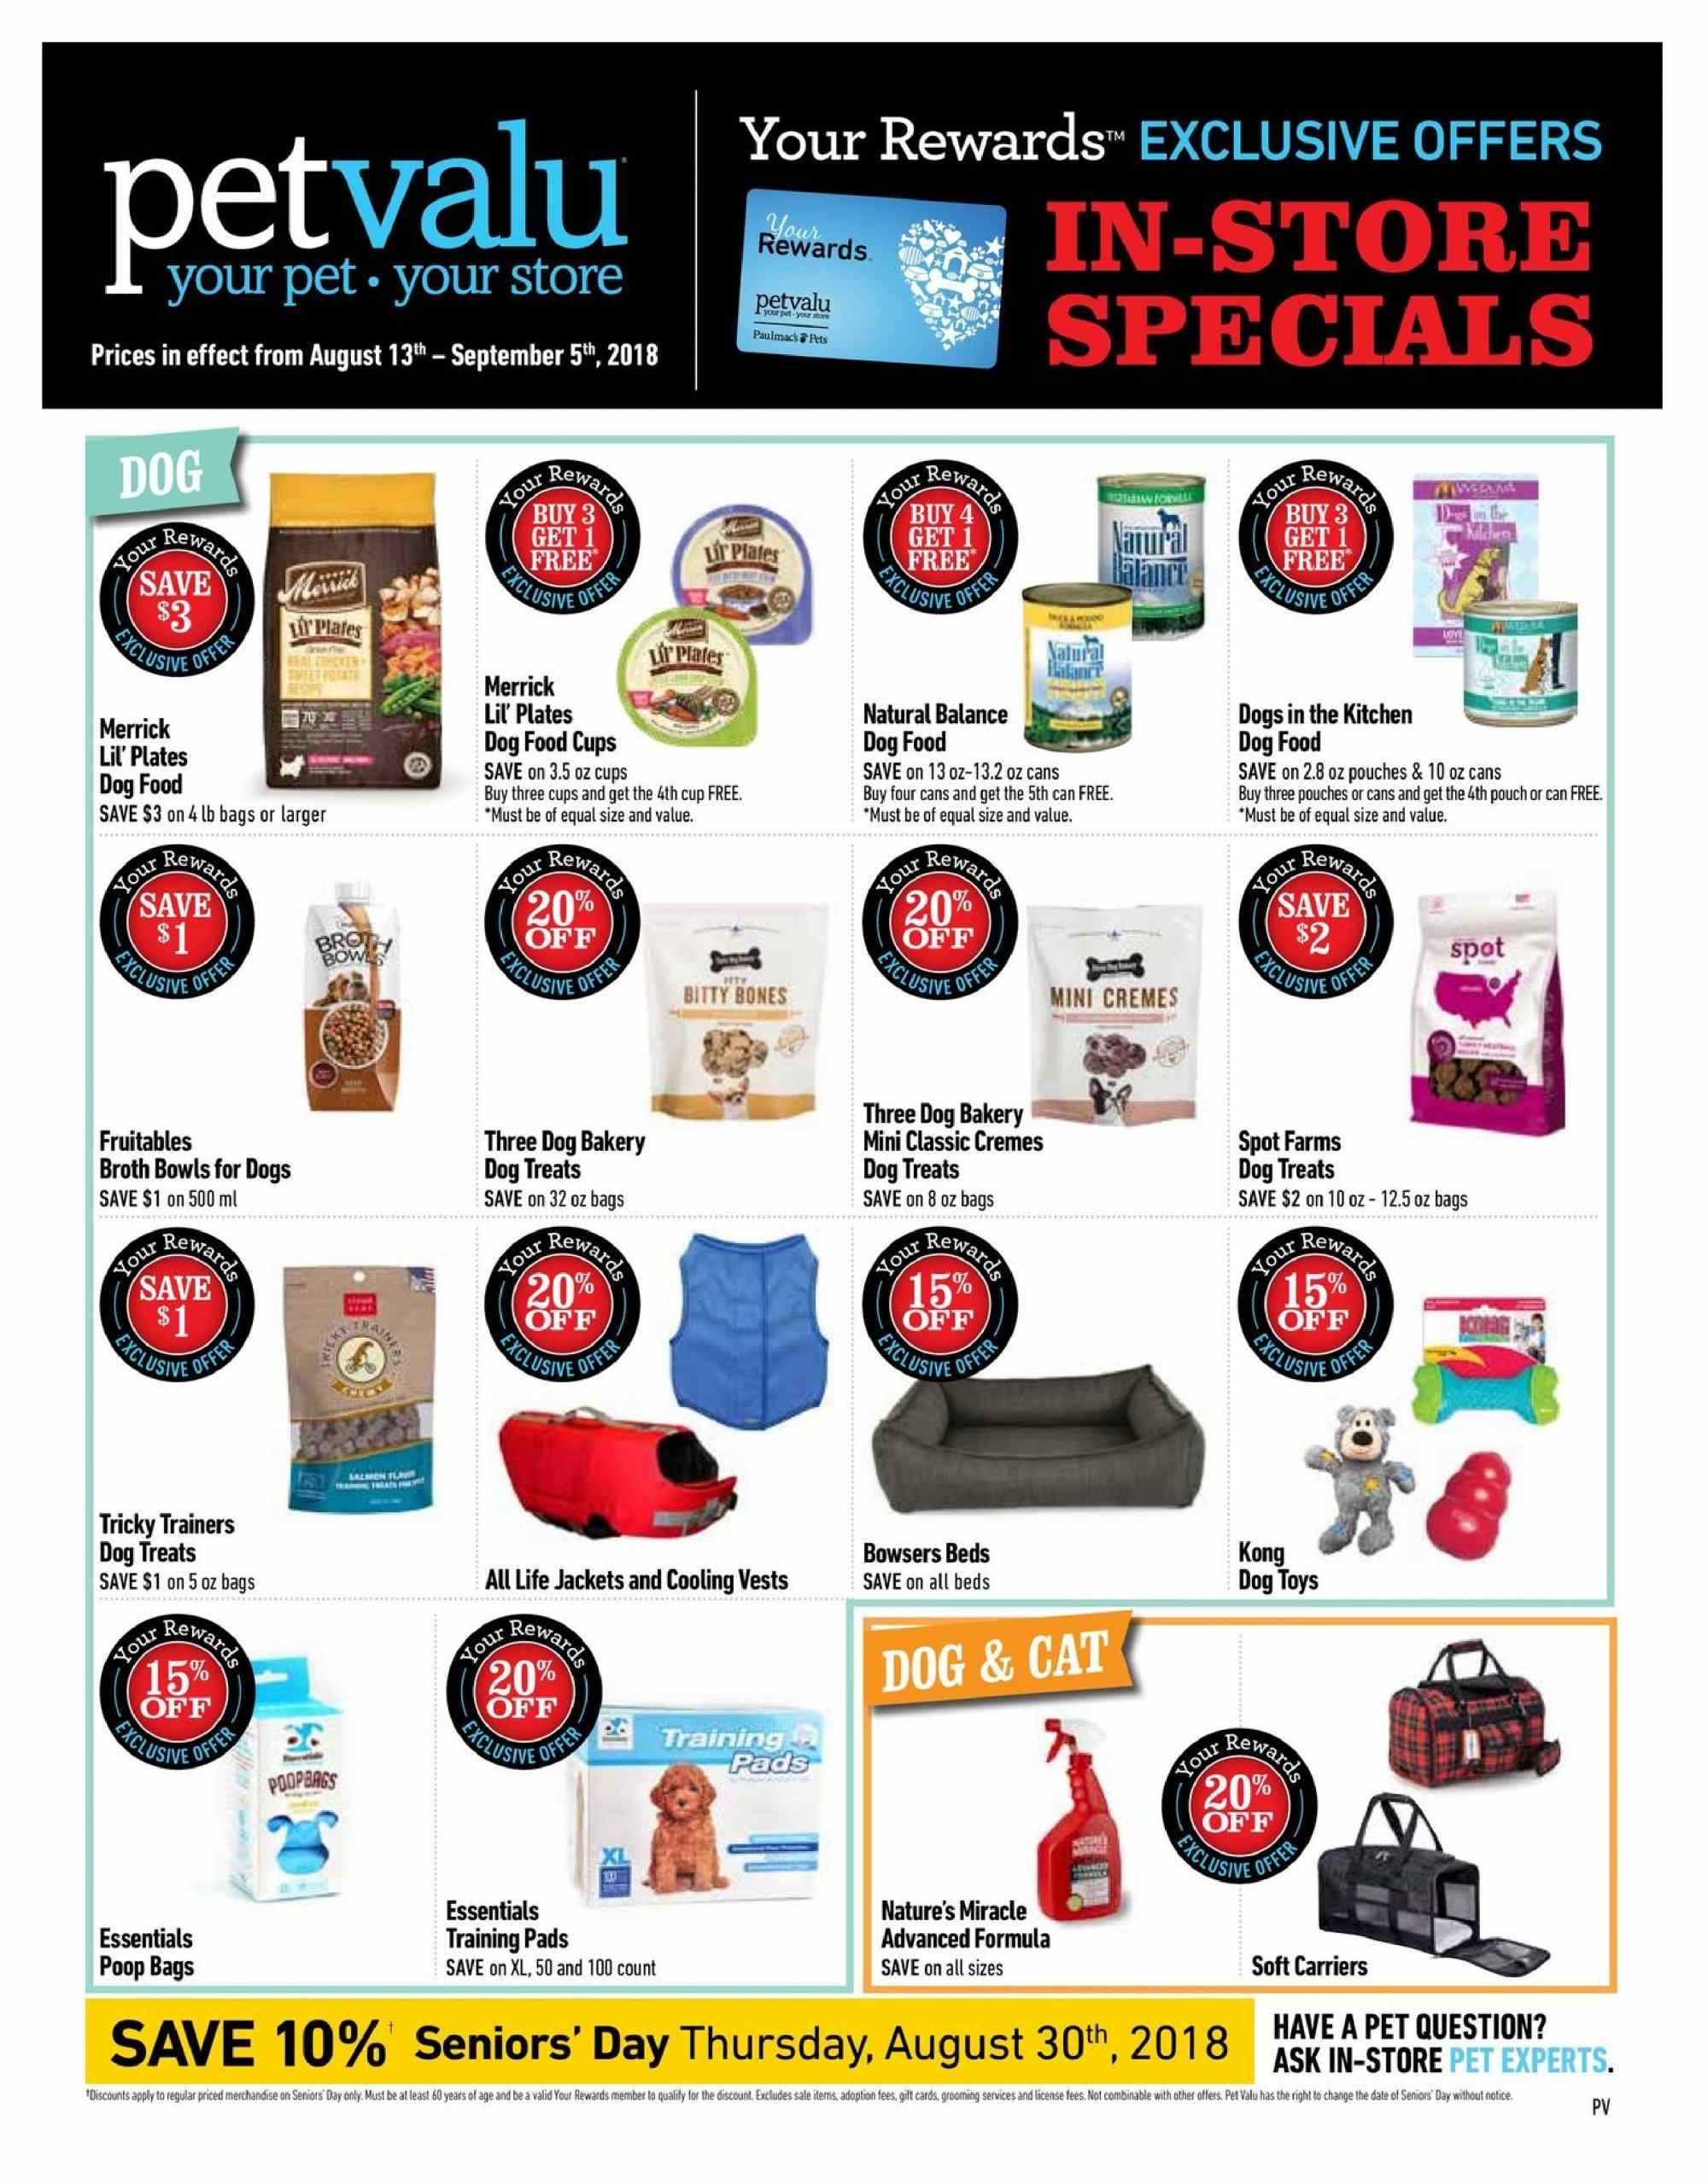 Pet Valu Flyer  - August 13, 2018 - September 05, 2018. Page 1.